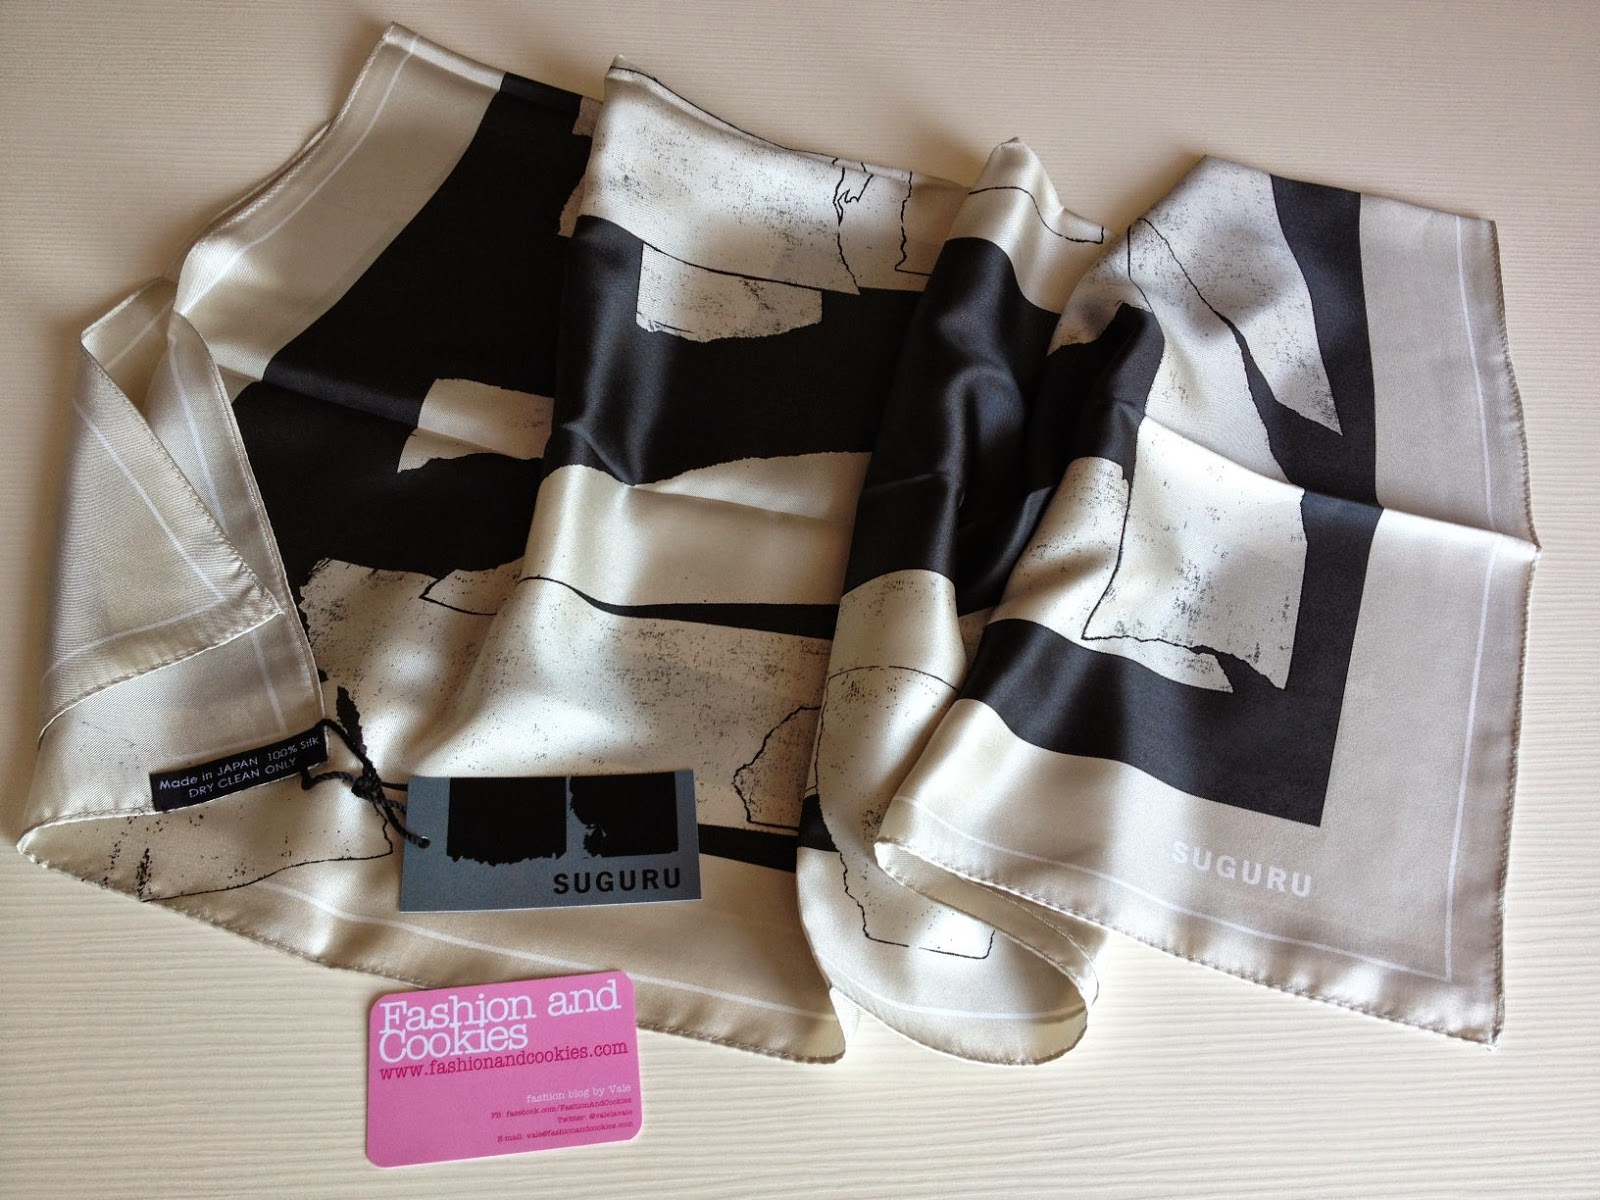 Suguru silk scarf, Fashion and Cookies, fashion blogger